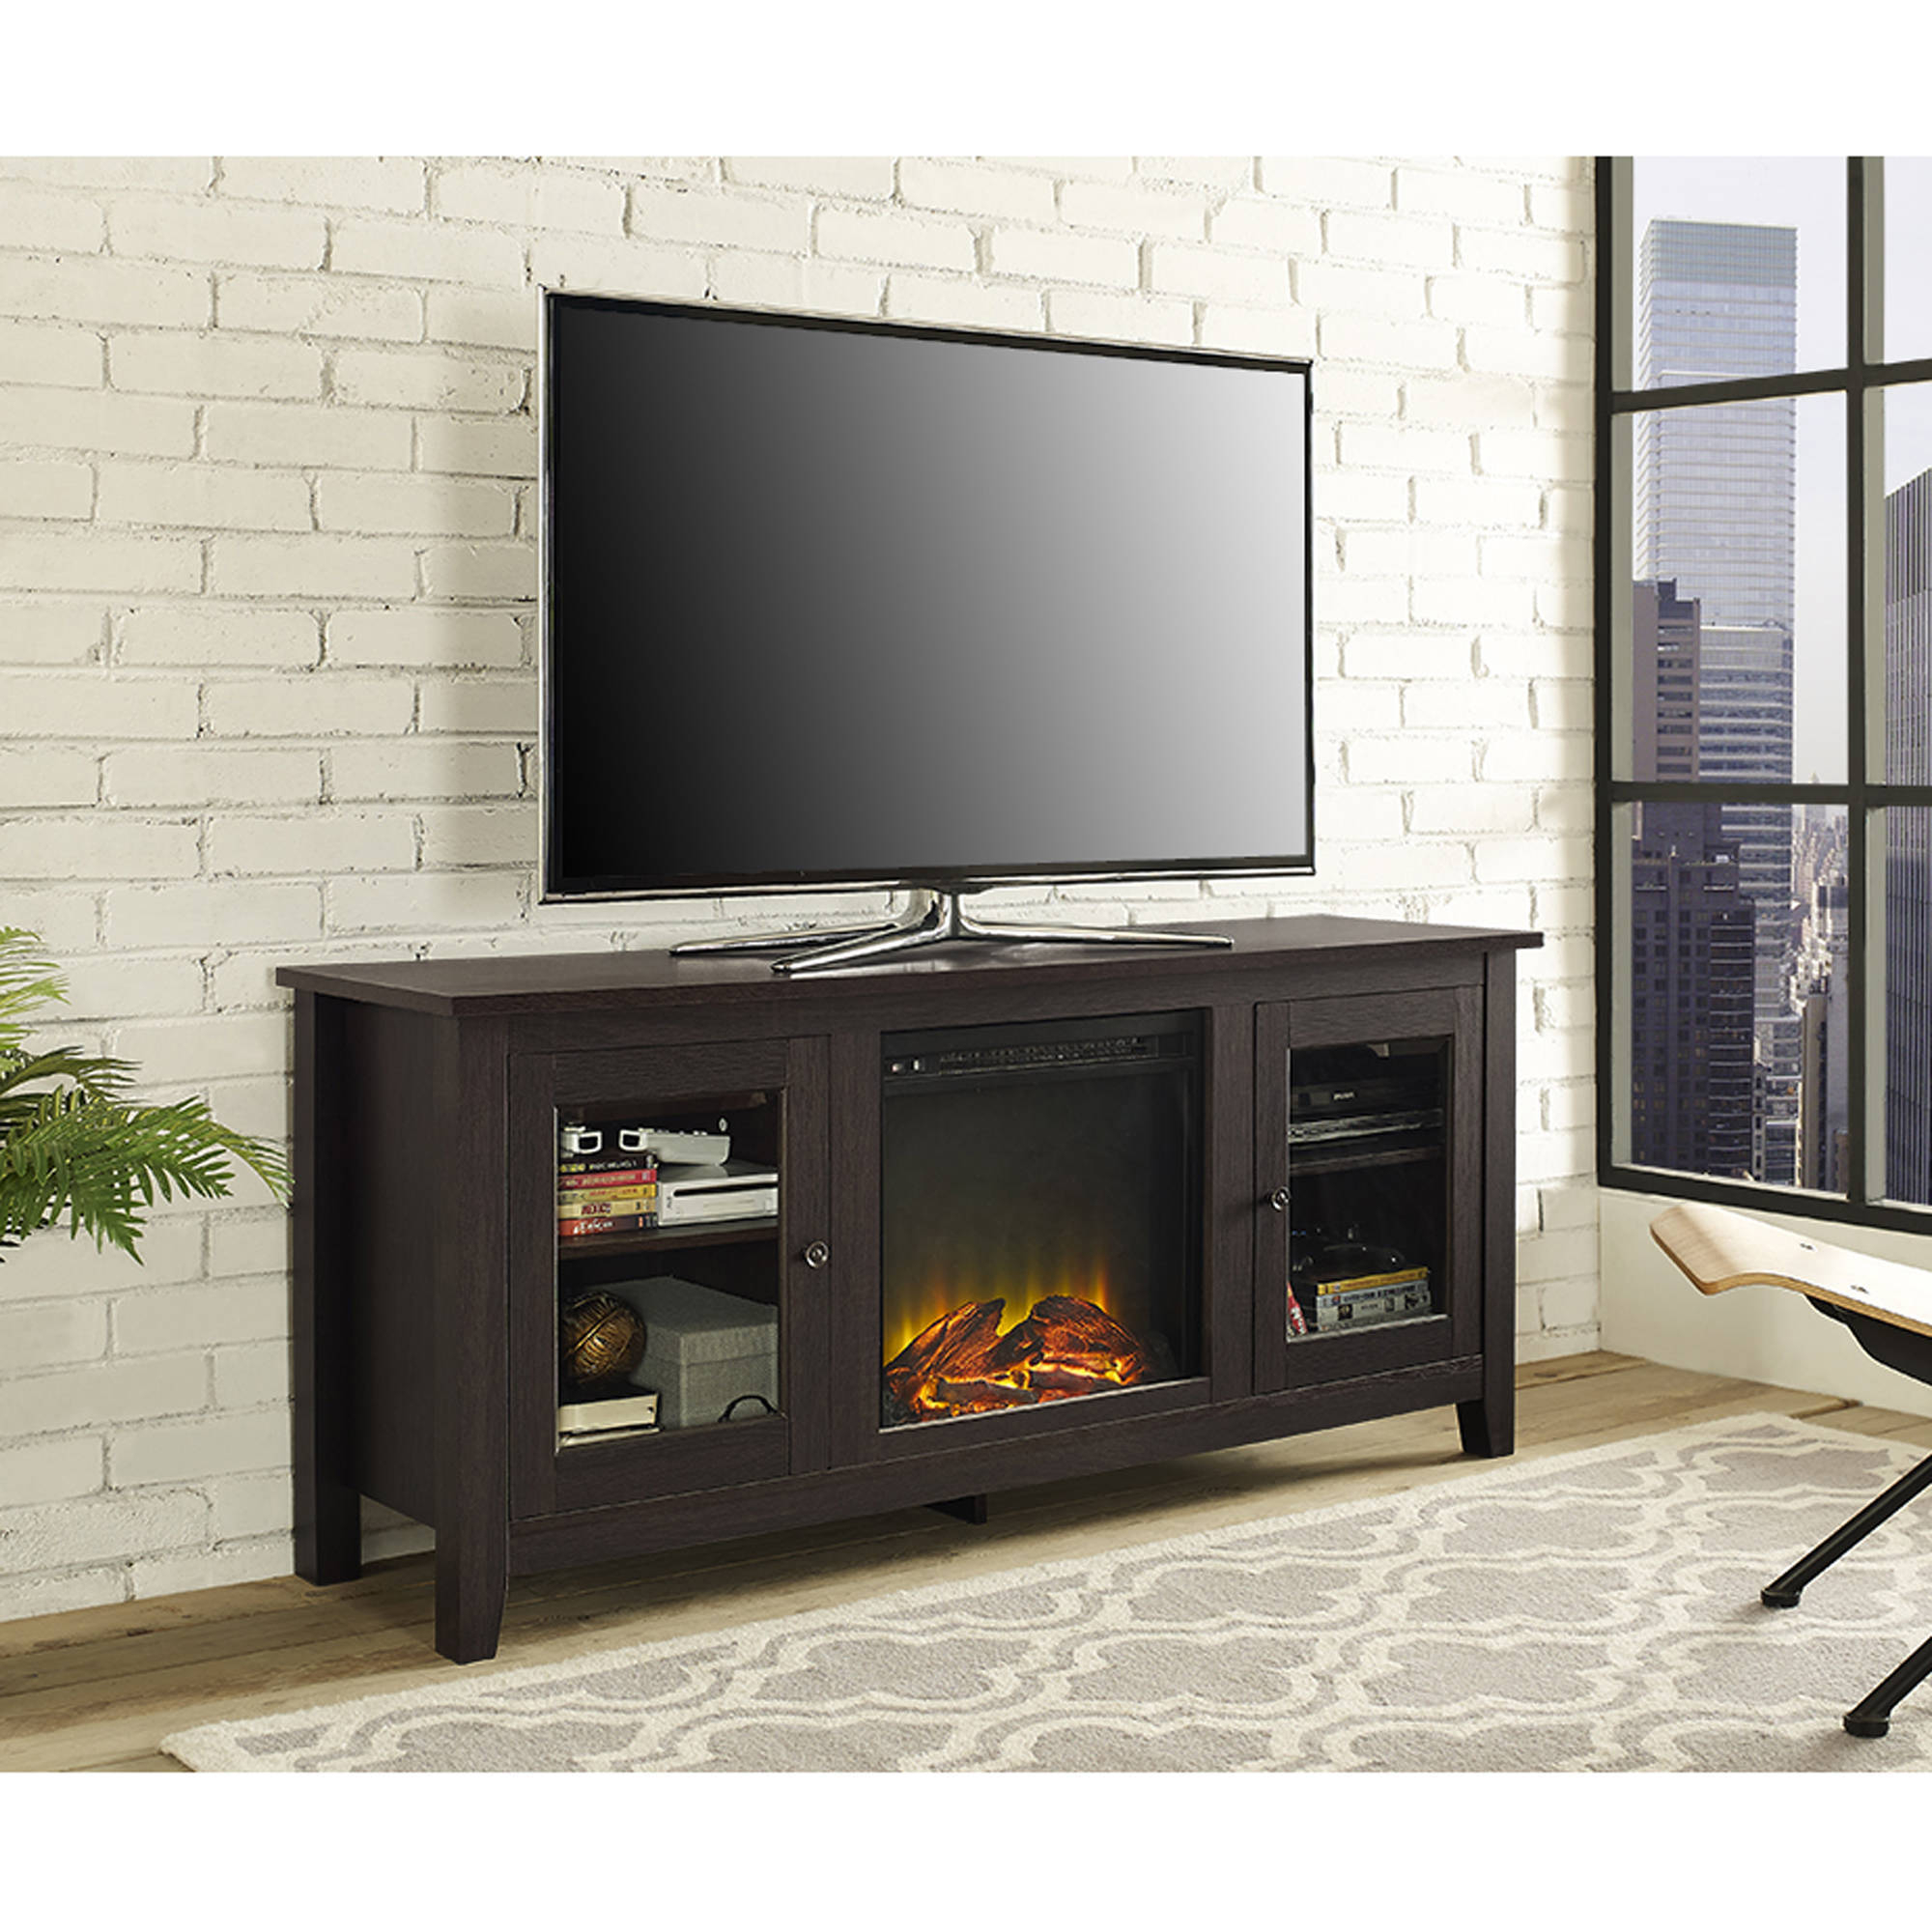 2017 Tv Stands With Storage Baskets For Tv Stands & Entertainment Centers – Walmart (View 1 of 20)